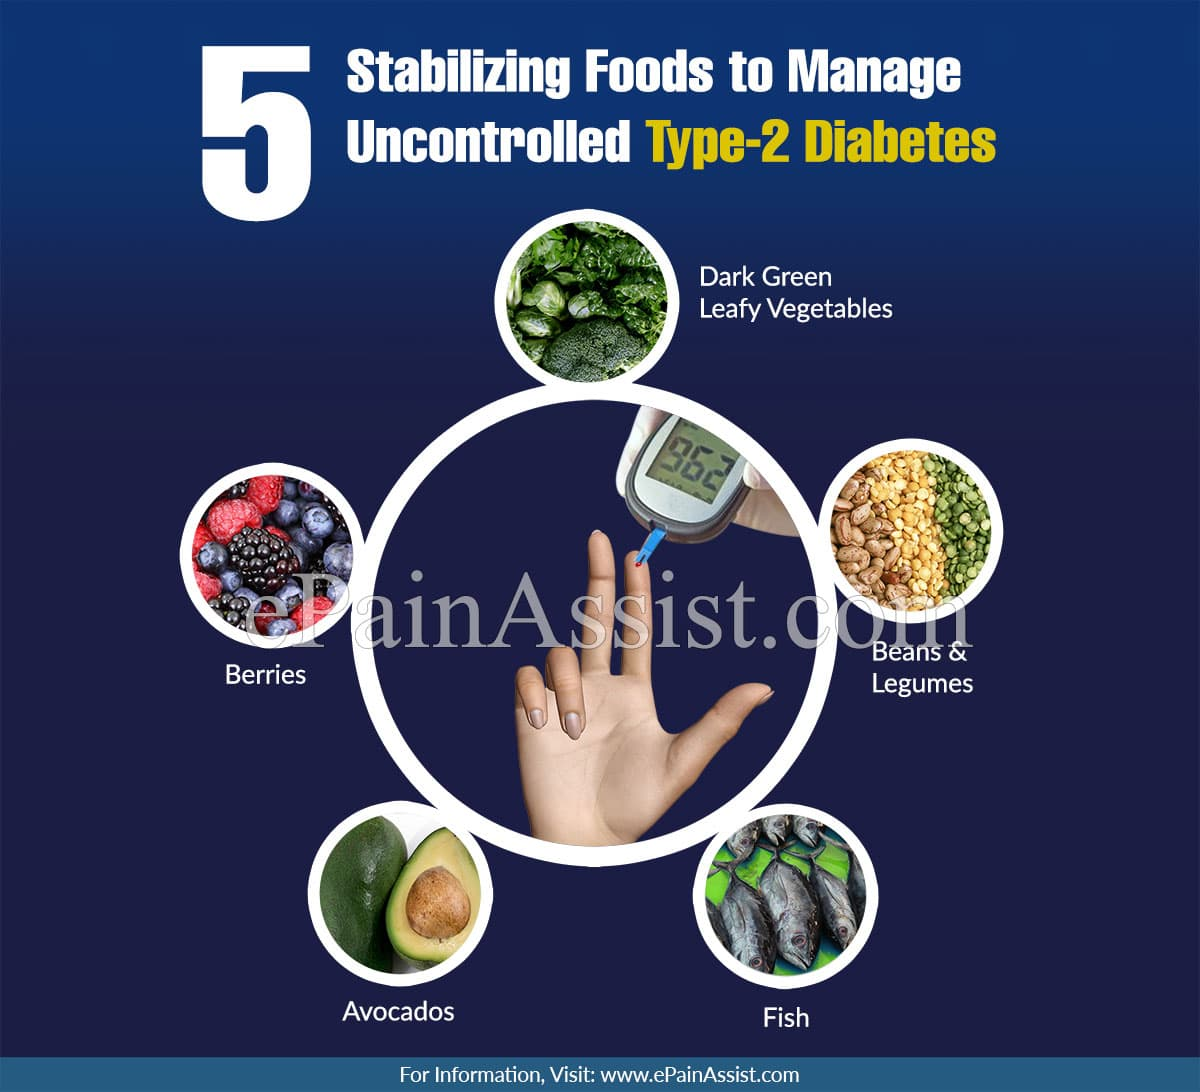 5 Stabilizing Foods to Manage Uncontrolled Type-2 Diabetes